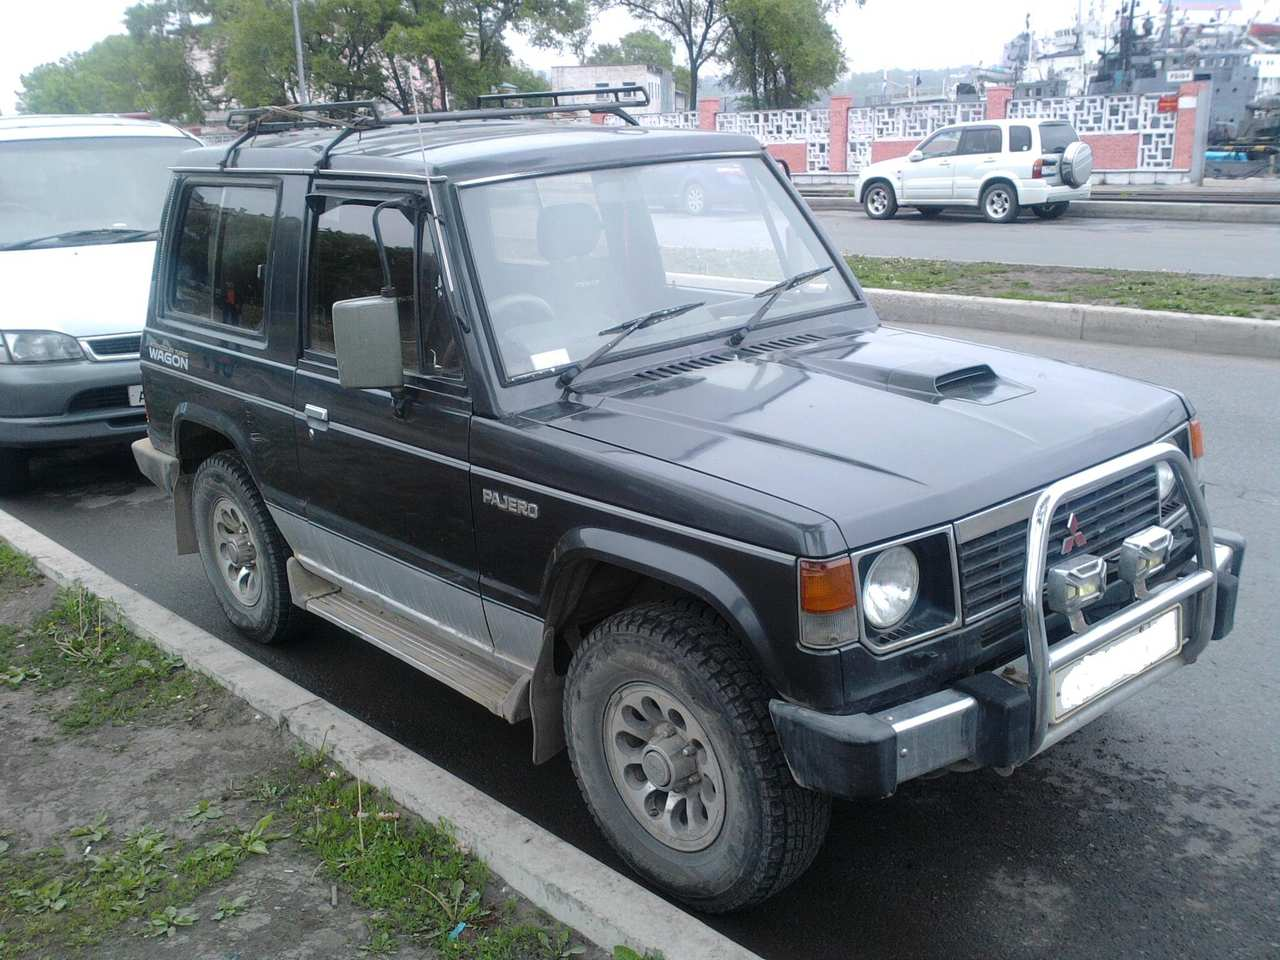 used 1990 mitsubishi pajero photos 2400cc diesel automatic for sale. Black Bedroom Furniture Sets. Home Design Ideas